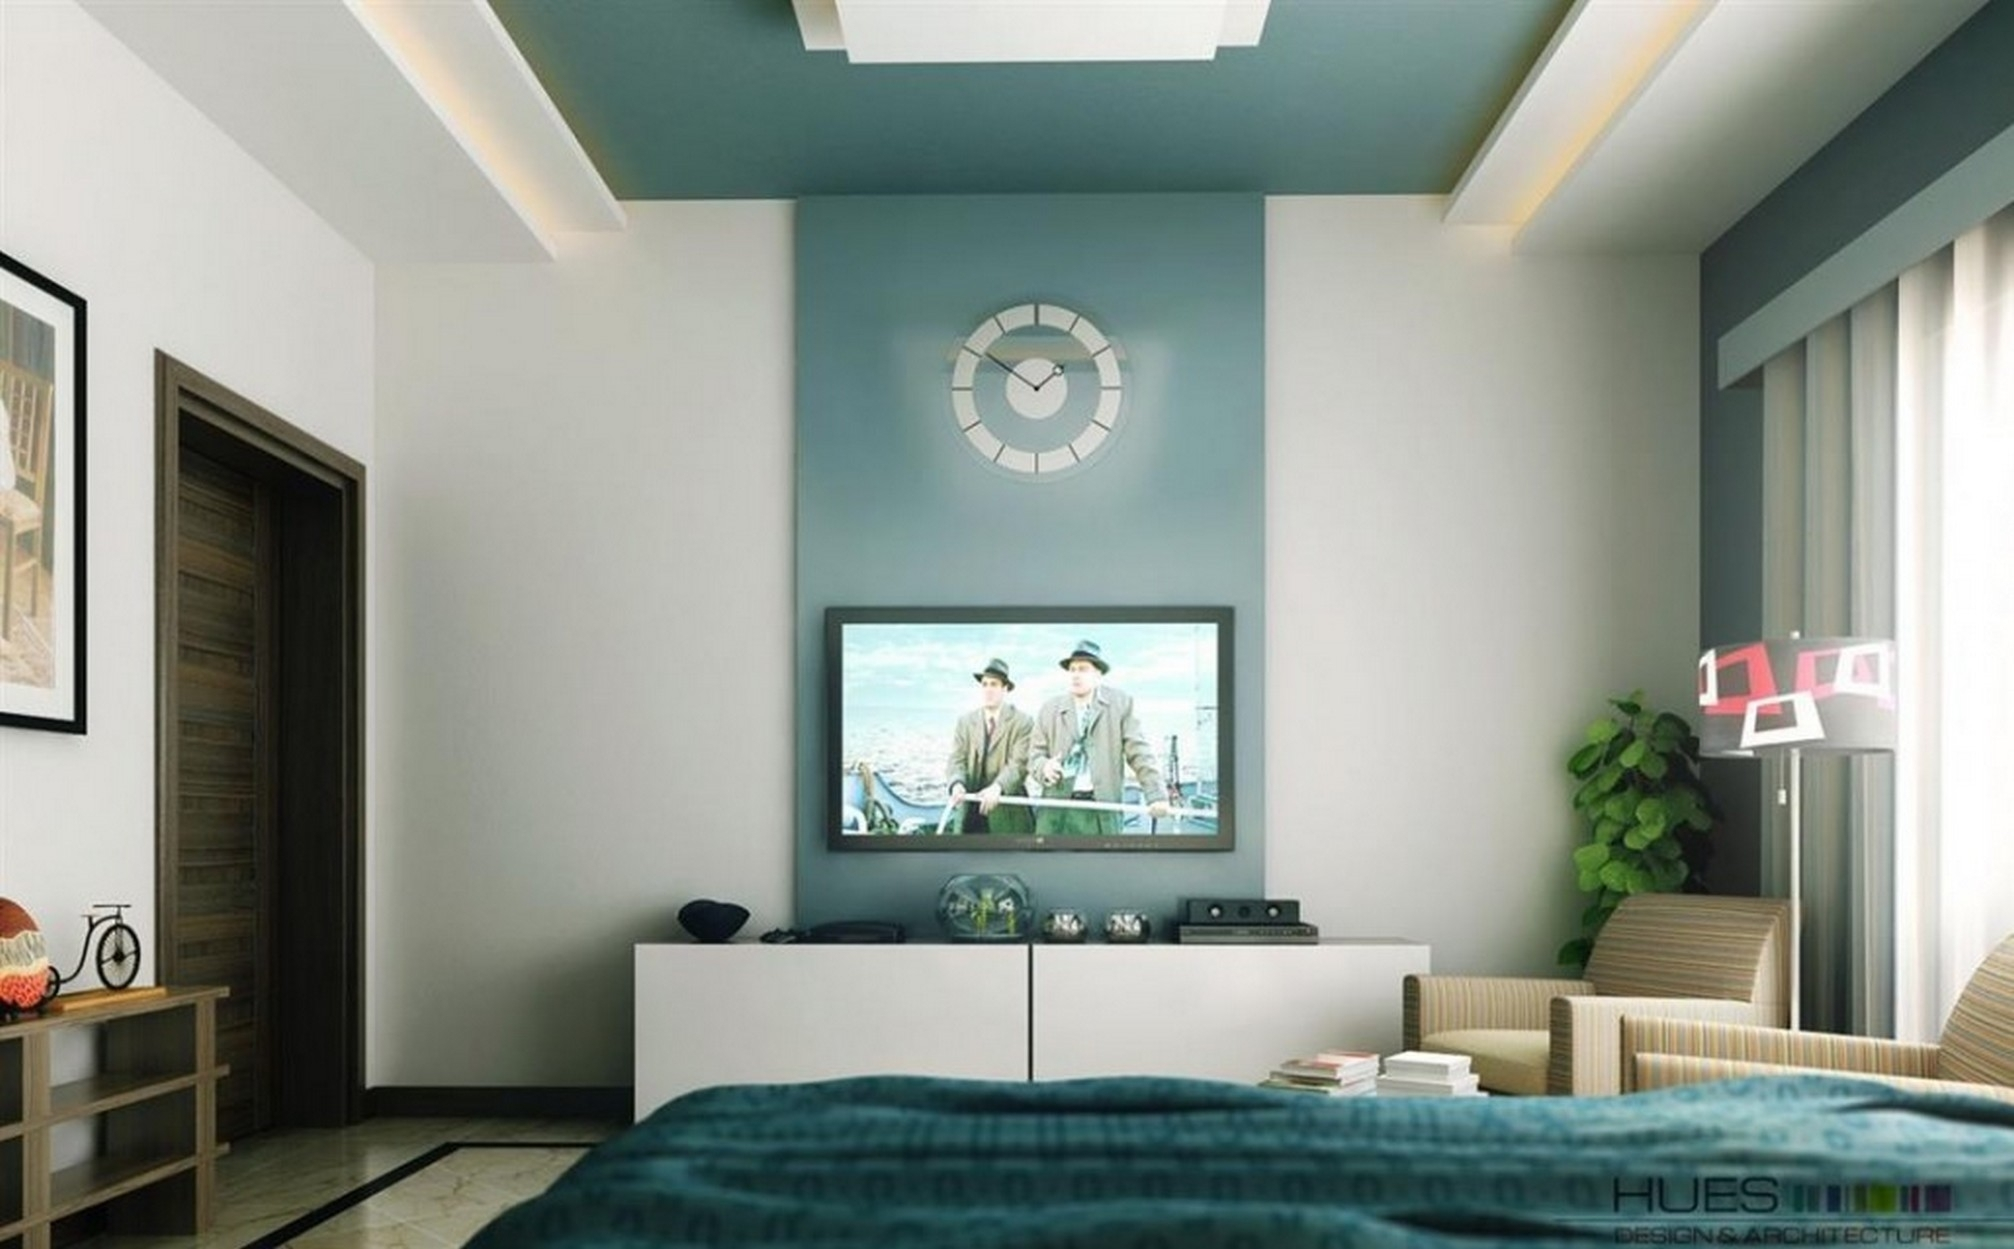 Accent Wall Color For High Walls With Round Clock Ideas And Tv On Inside Newest High Ceiling Wall Accents (View 5 of 15)